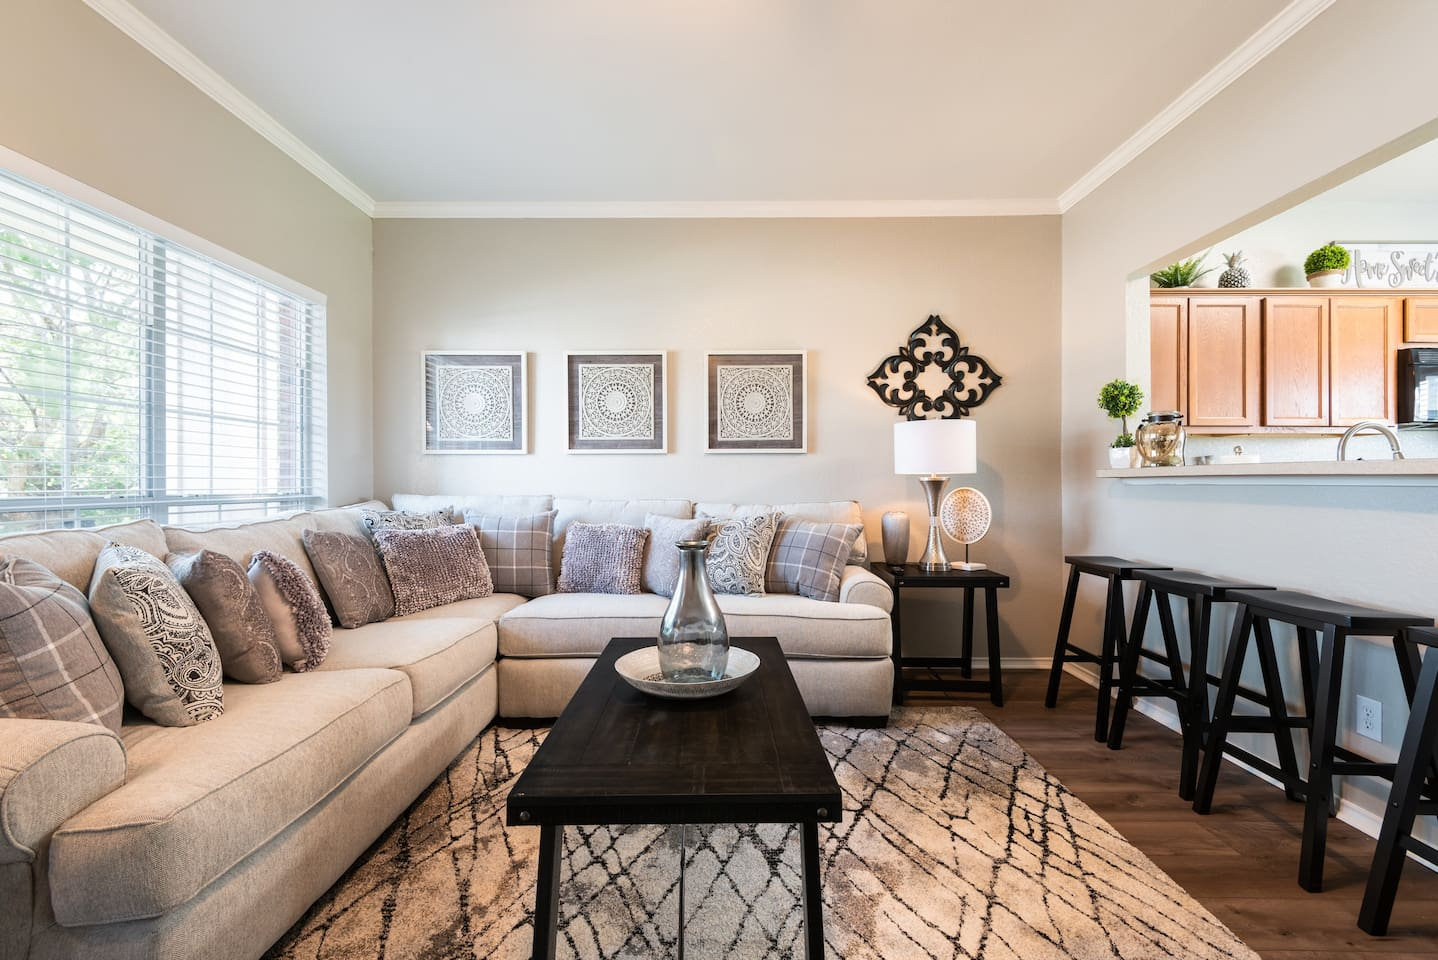 Very comfortable family room